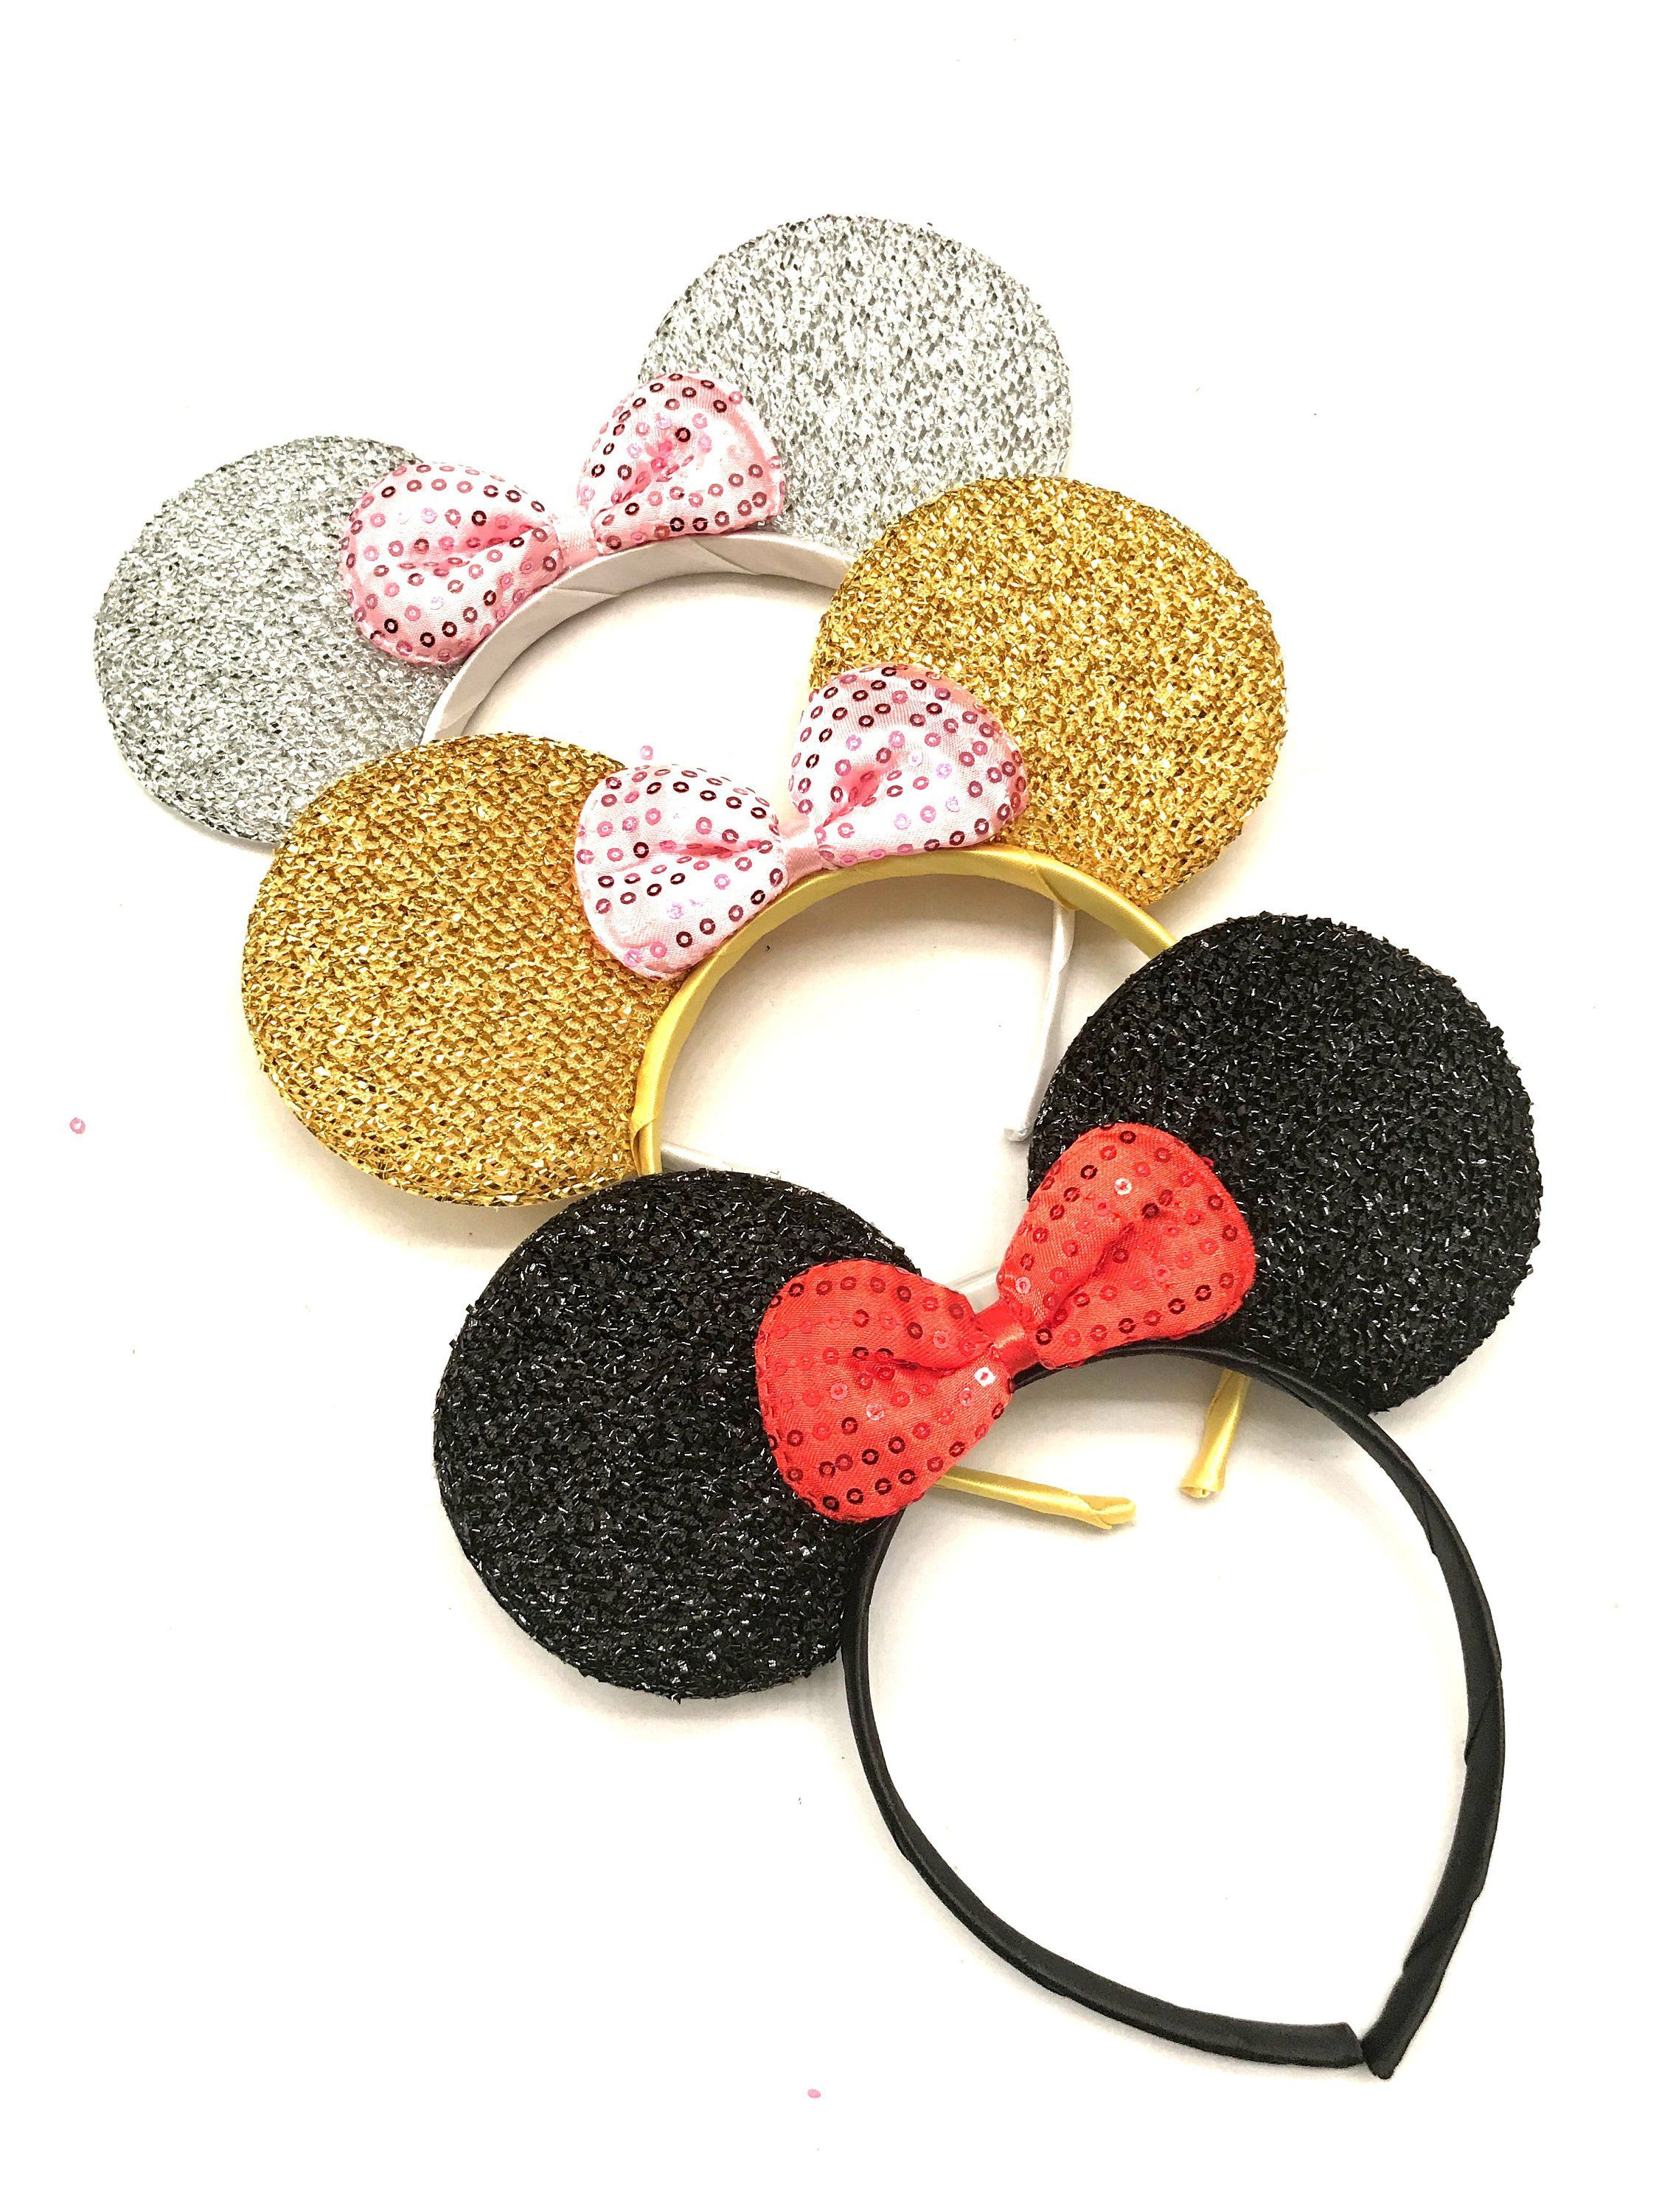 Disney Mickey Mouse Inspired Mermaid Sequin Hair Clip Bow Gold Pink Black Red